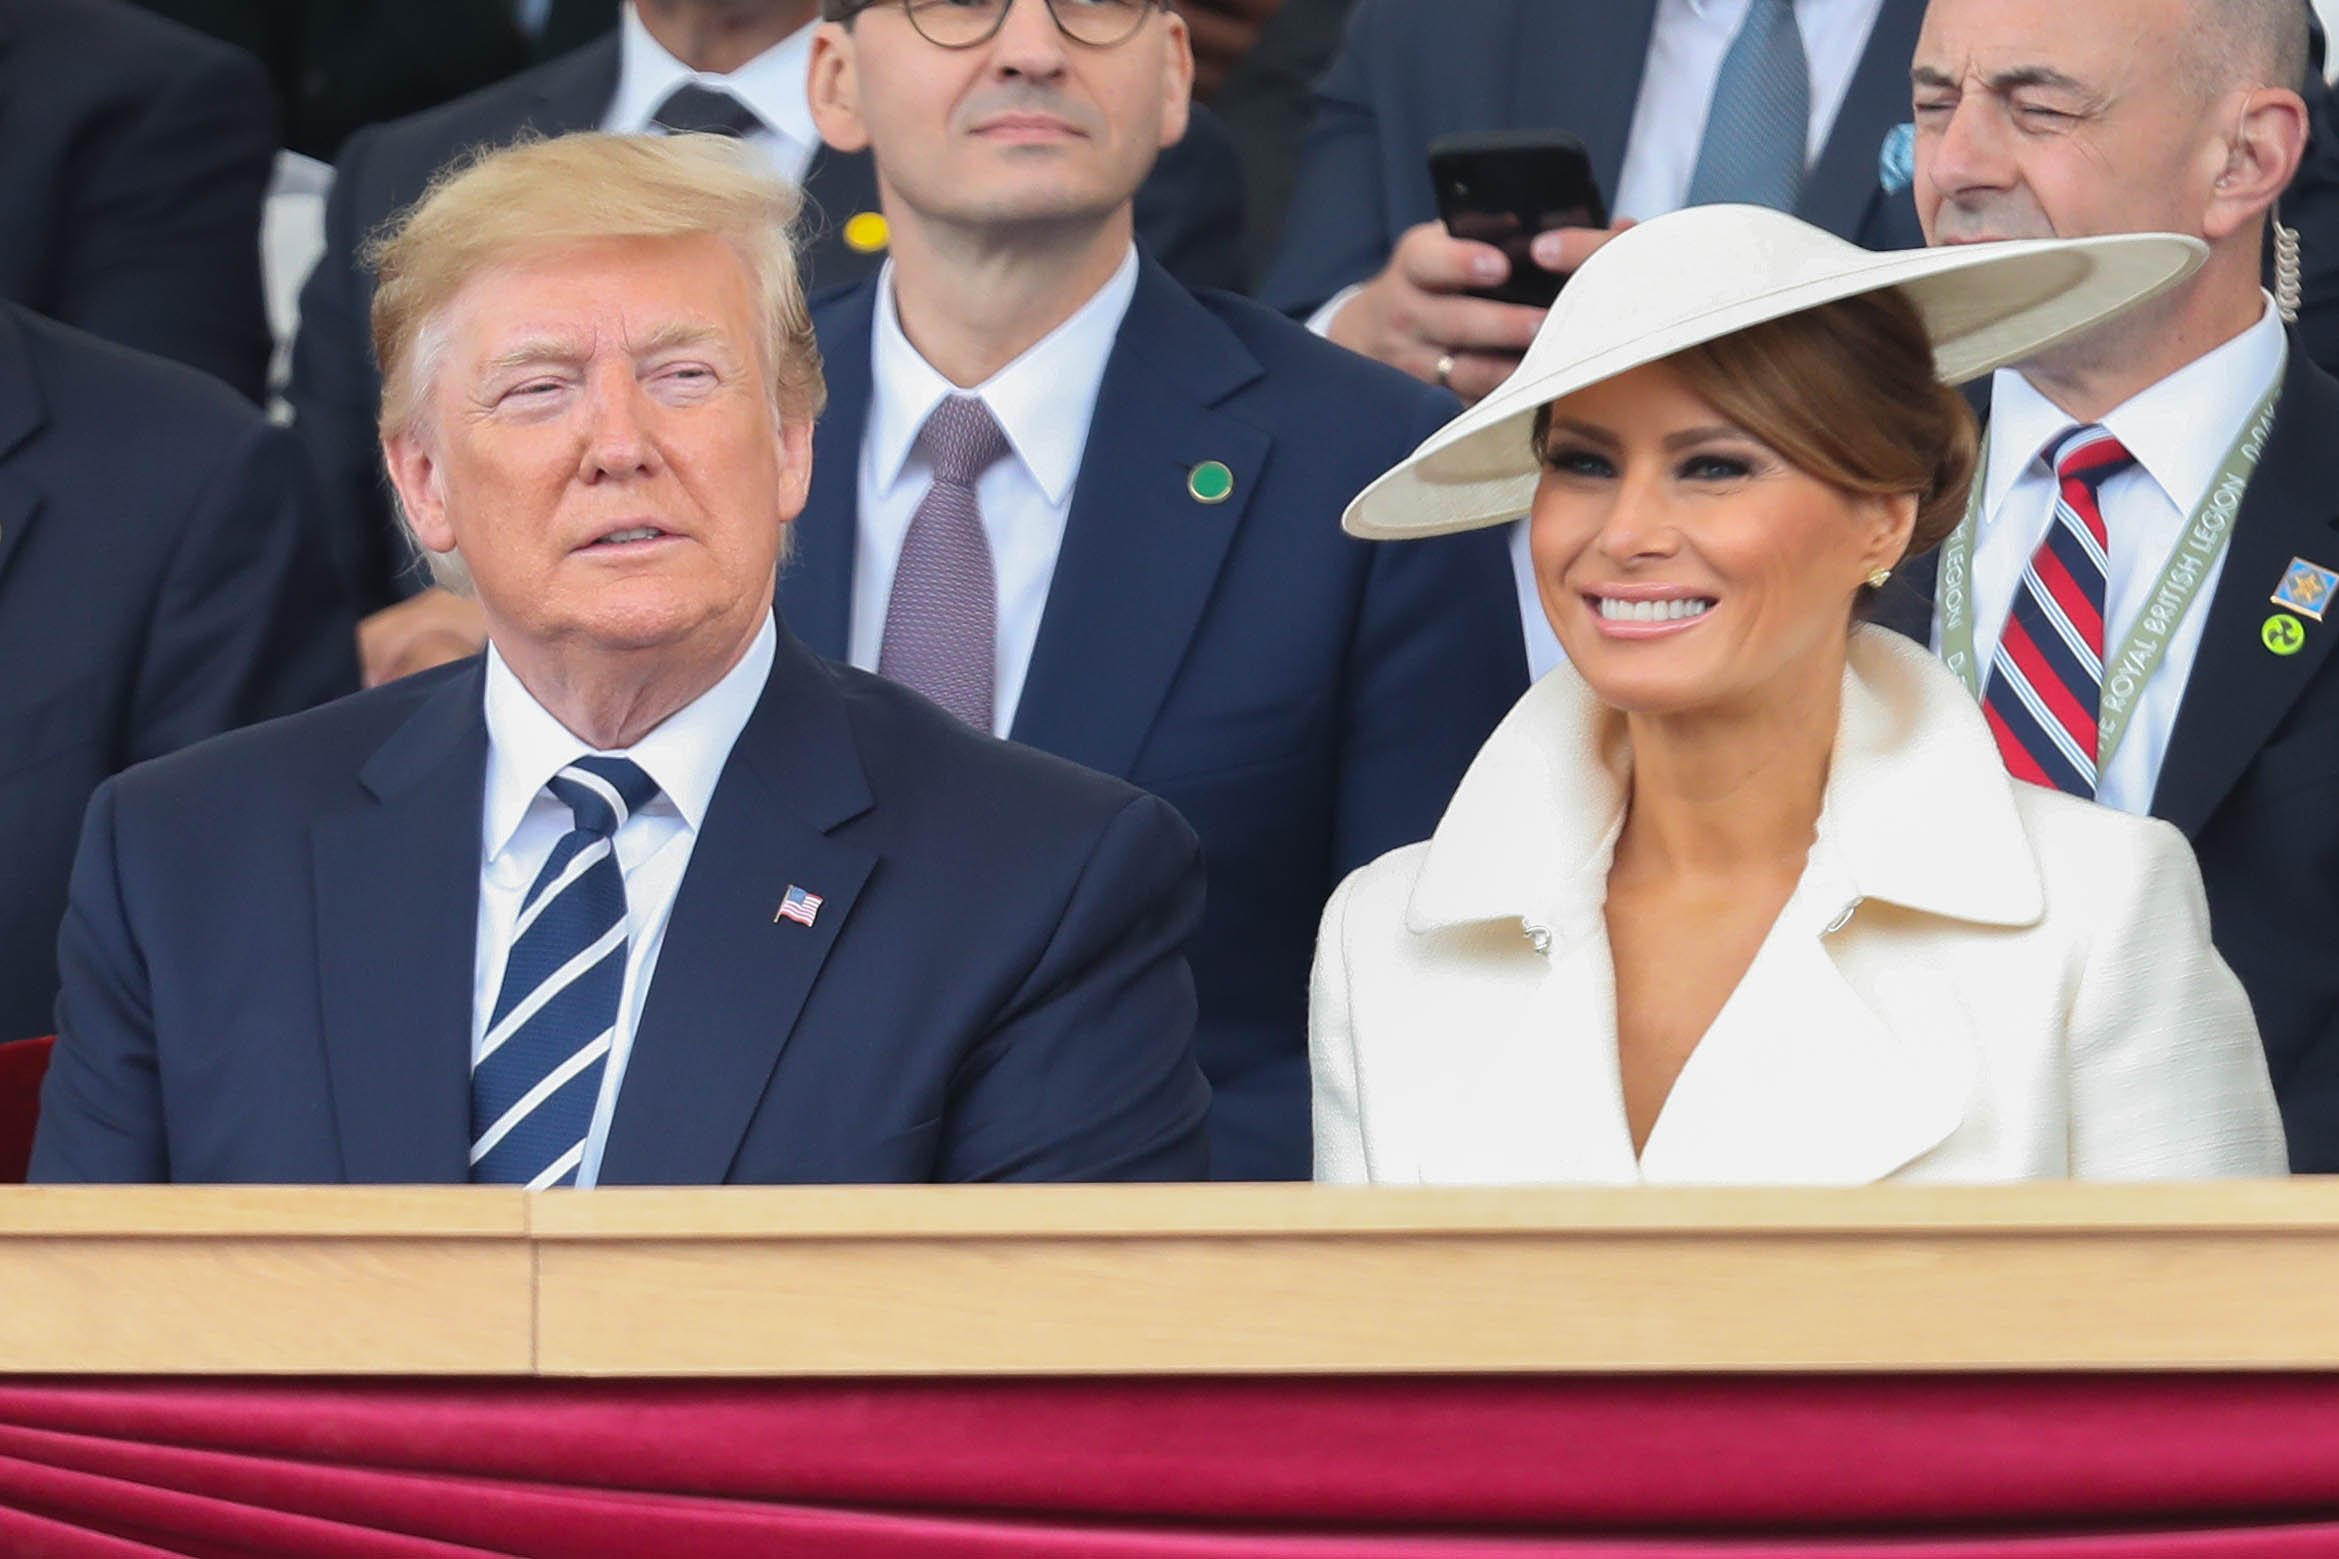 President Trump and Melania Trump at the D-Day Commemorations on June 5, 2019 in Portsmouth, England.   Photo: Getty Images